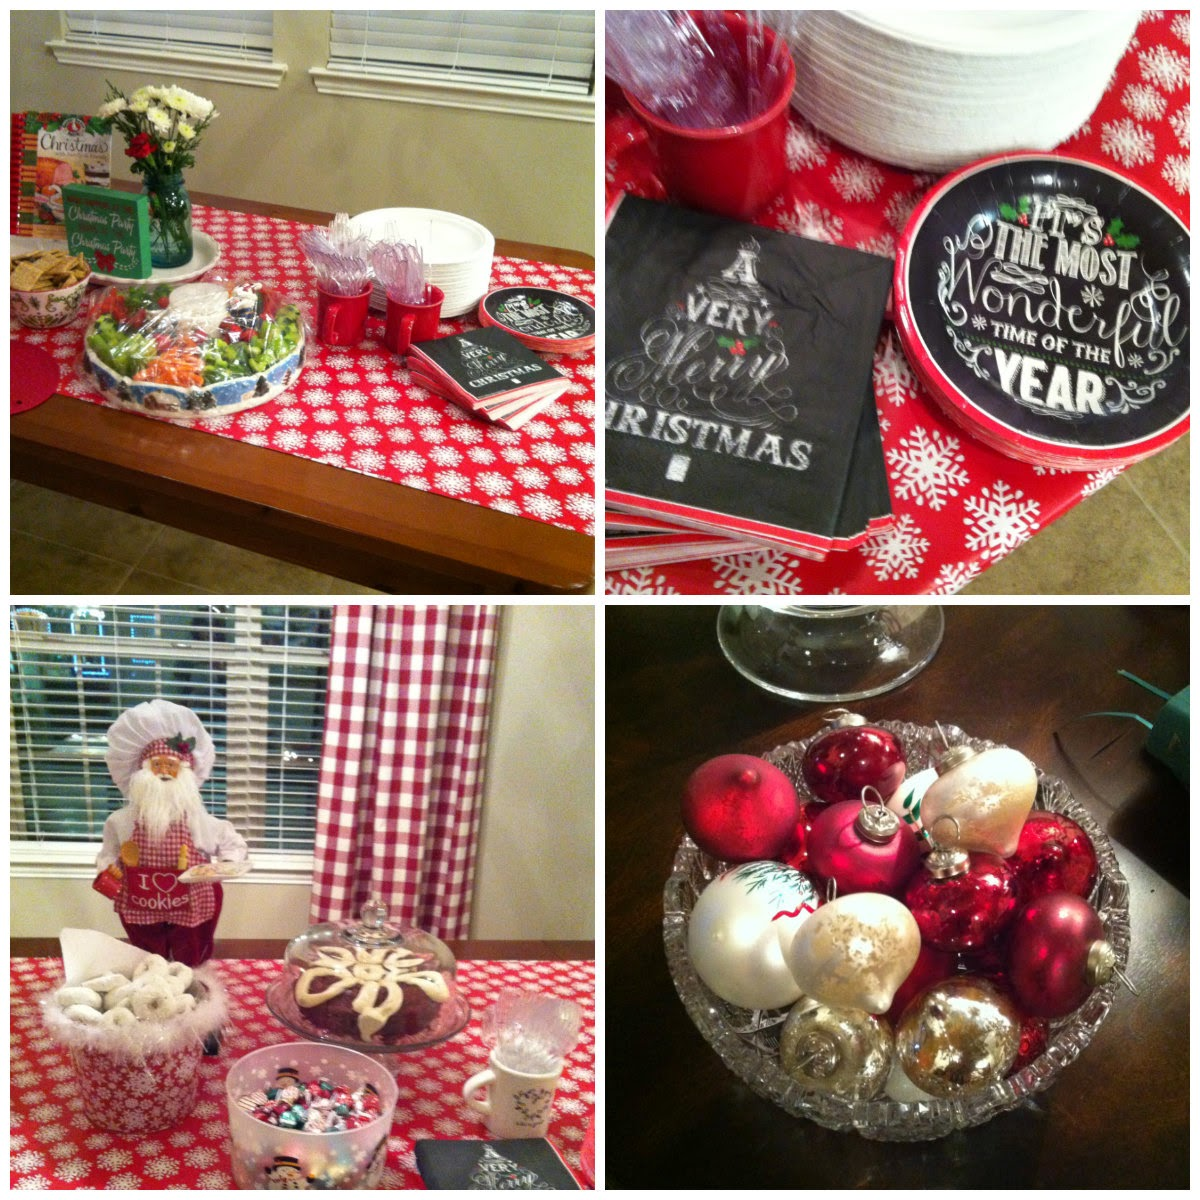 A Christmas party with 45 of my closest blogging friends. Easy and fun decorating.